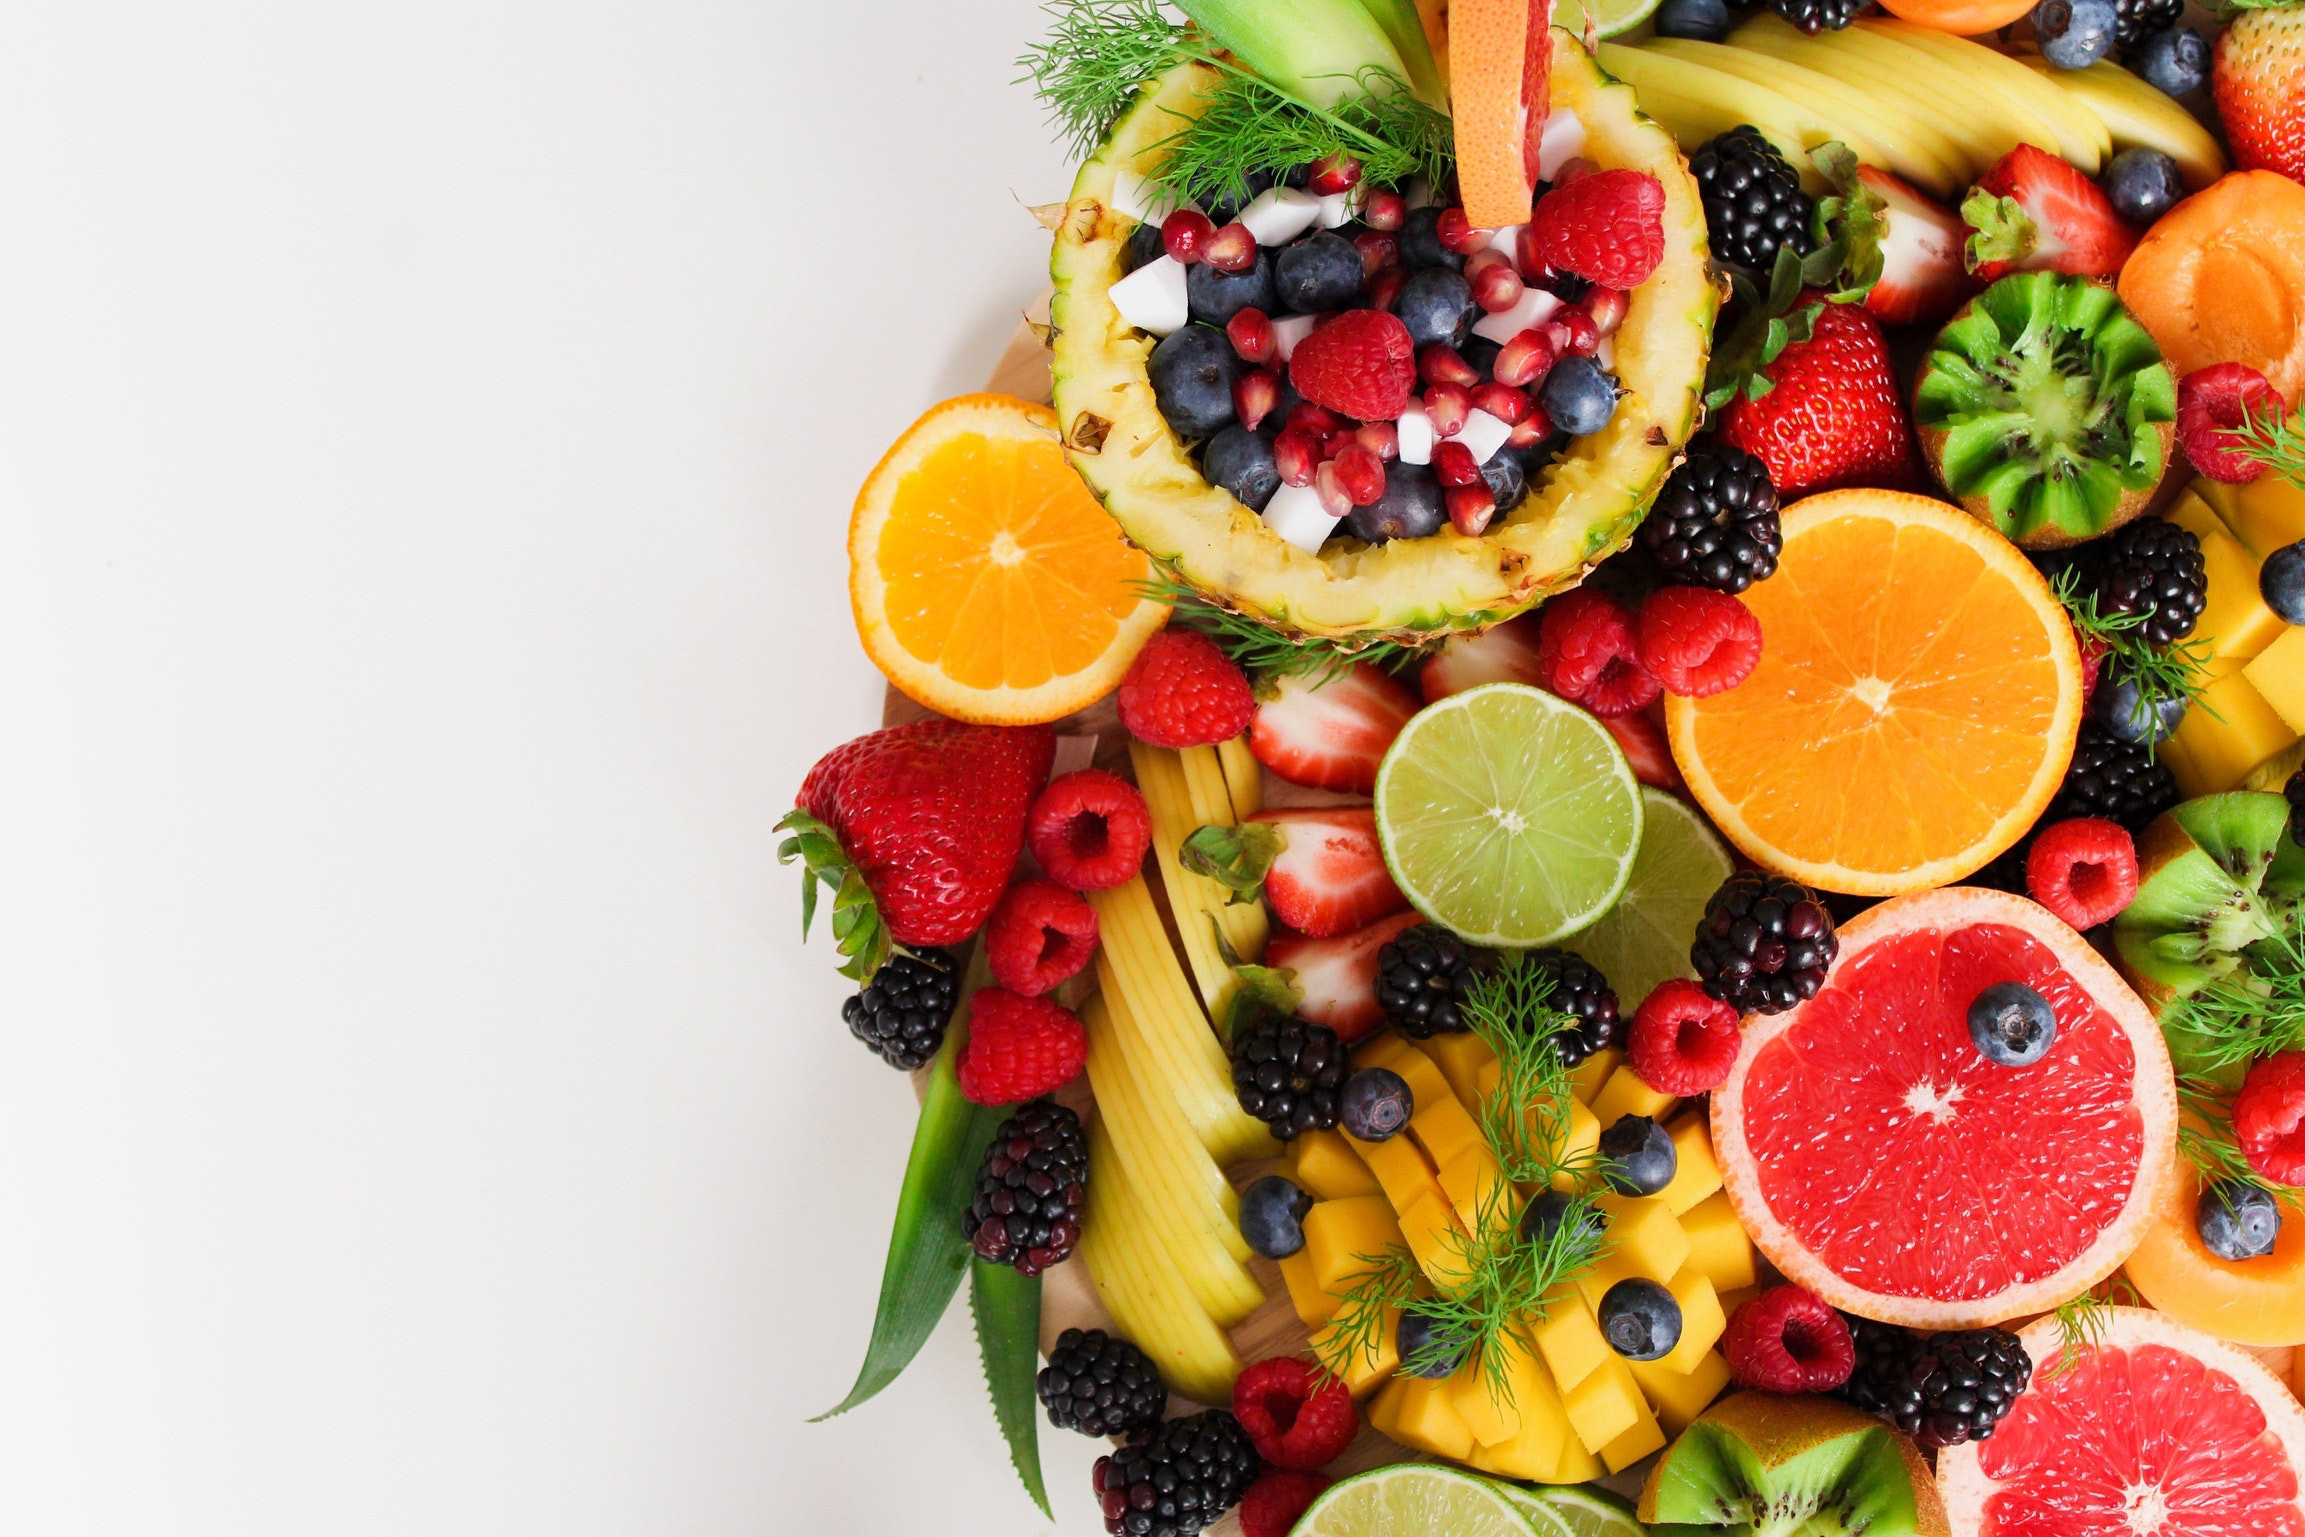 Nutrition and Diet Plans